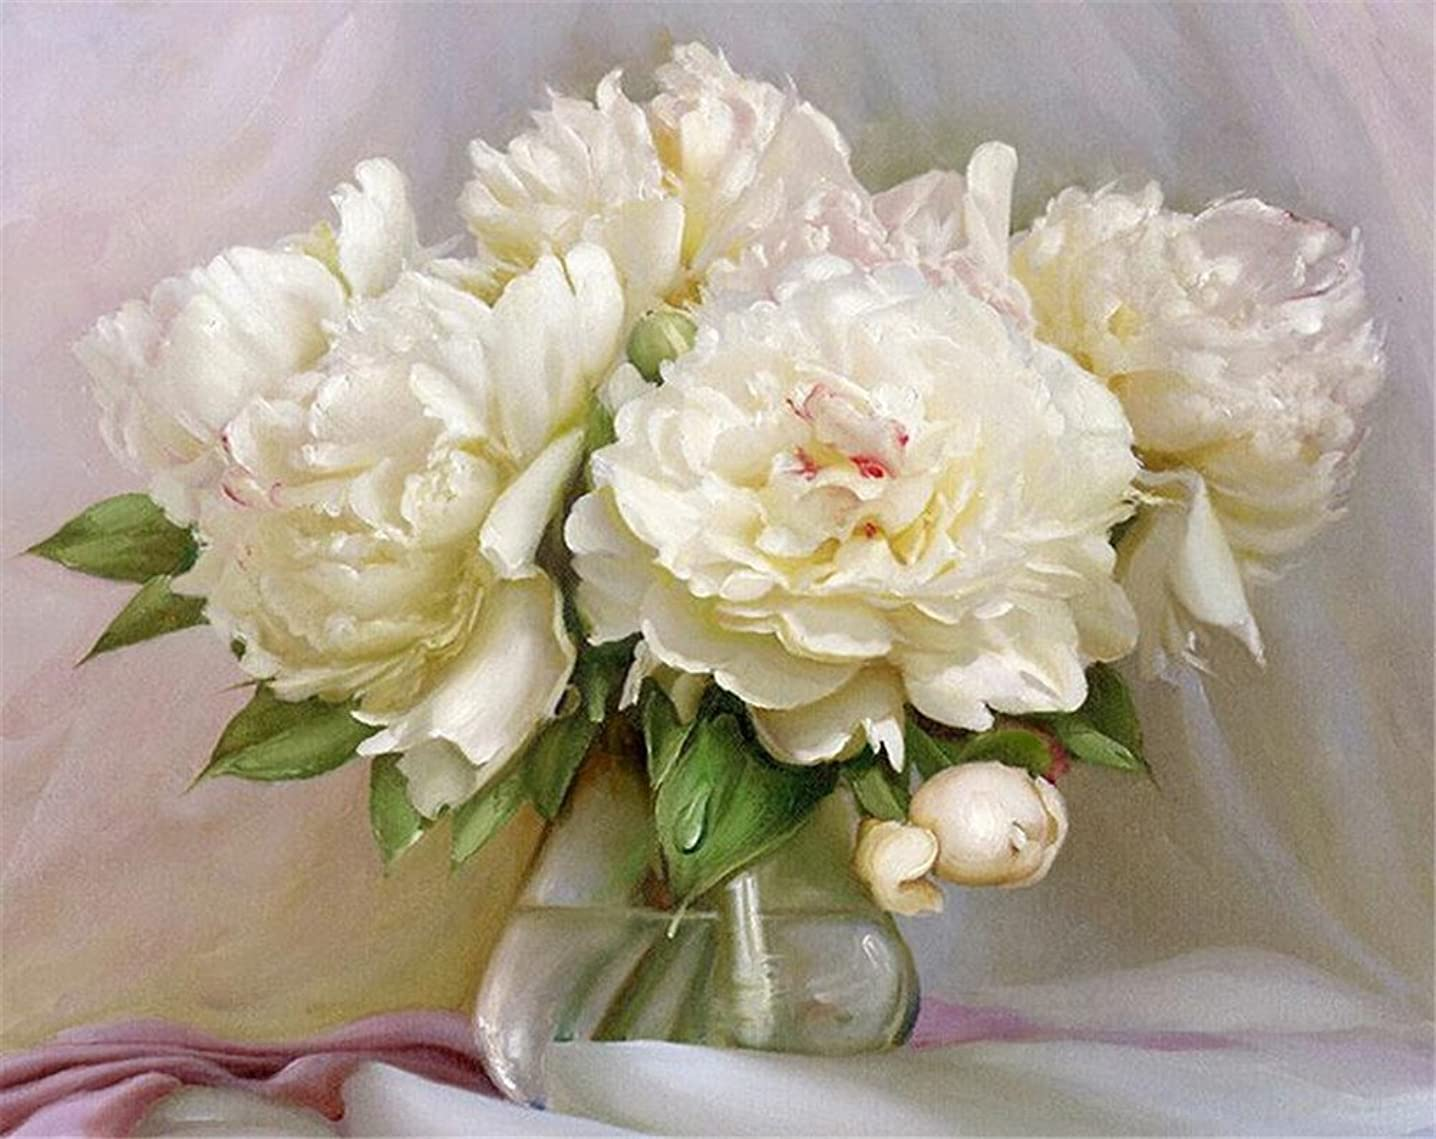 YEESAM Art Paint by Number Kits for Adults Kids - White Peonies 16x20 inch Linen Canvas (Without Frame)